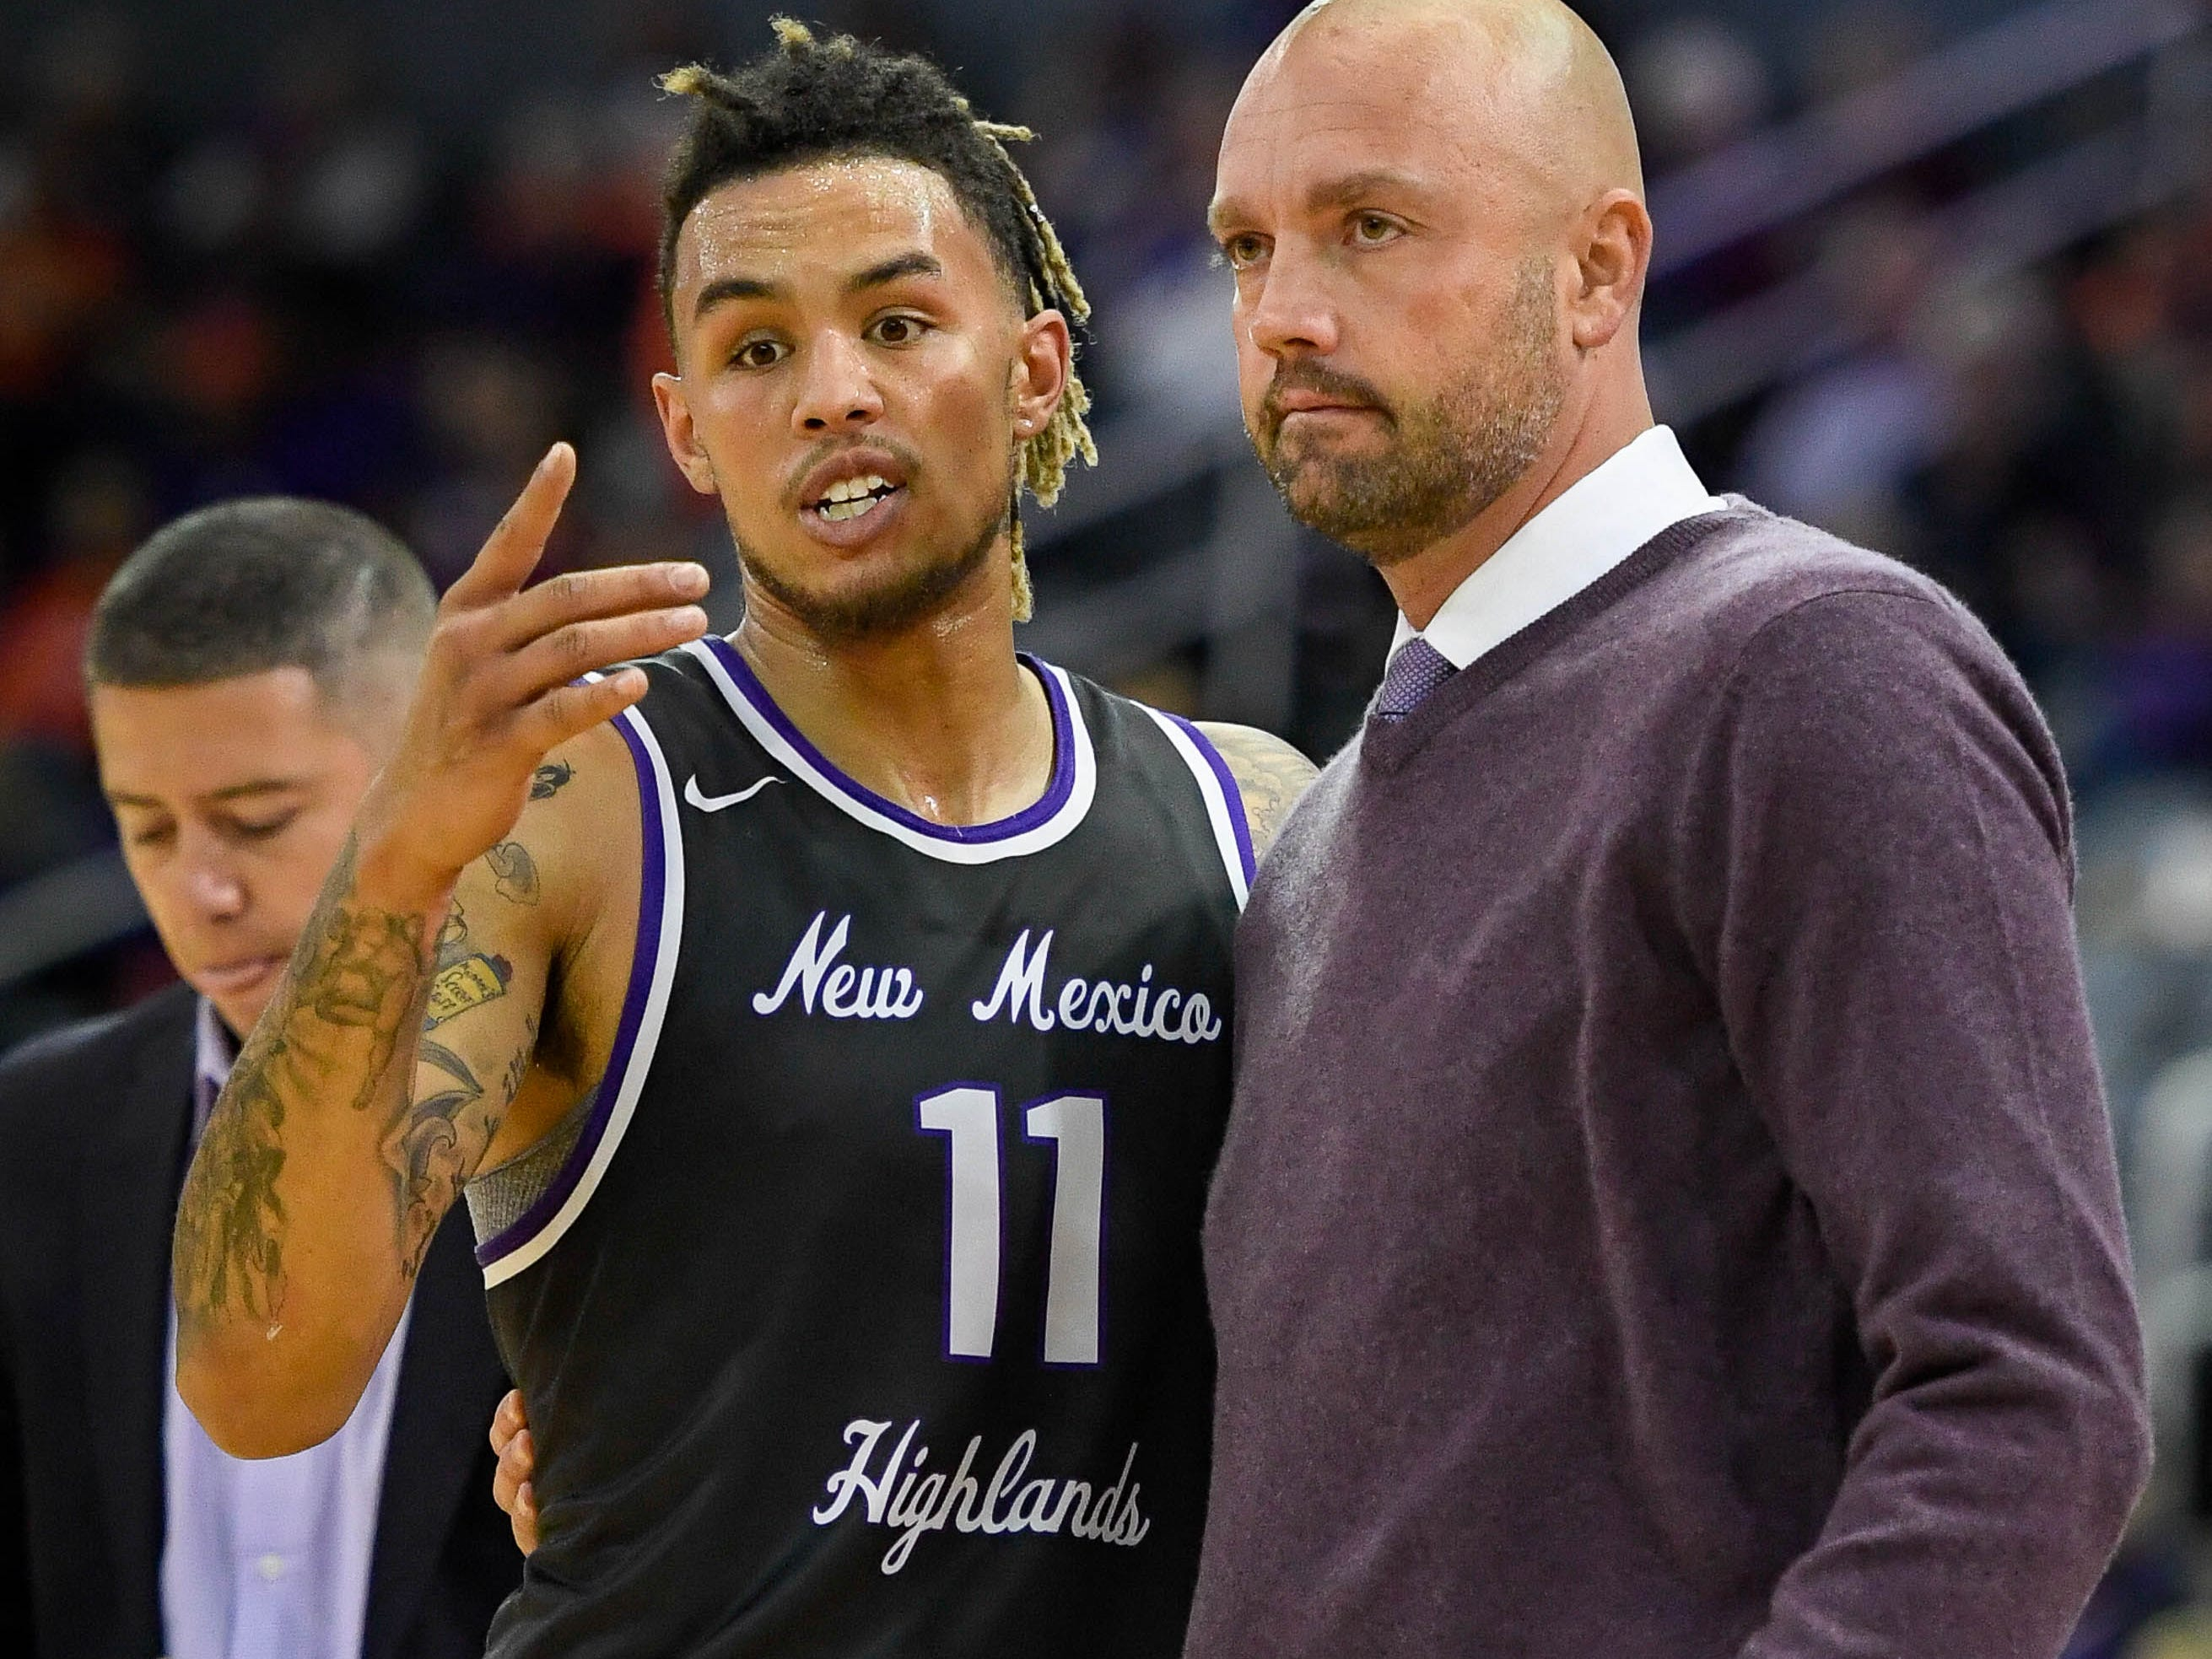 New Mexico Highlands' Jordan Jones (11) talks with New Mexico Highlands head coach Craig Snow as the University of Evansville Purple Aces play the New Mexico Highlands Cowboys in a exhibition game at the Ford Center Saturday, November 3, 2018.